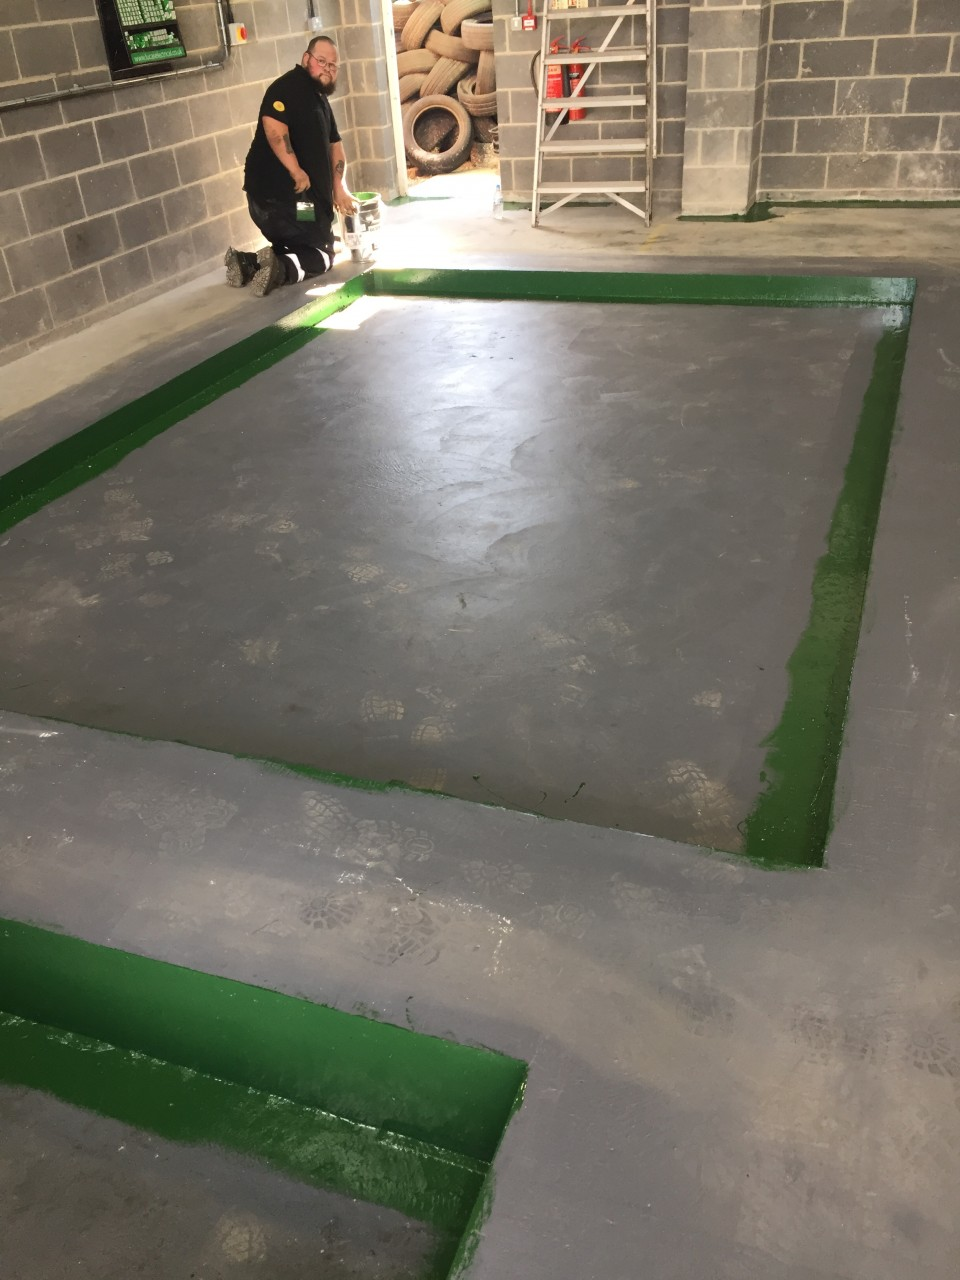 COMPLETED AND SET CONCRETE READY FOR THE INSTALLATION OF THE NEW MOT EQUIPMENT.